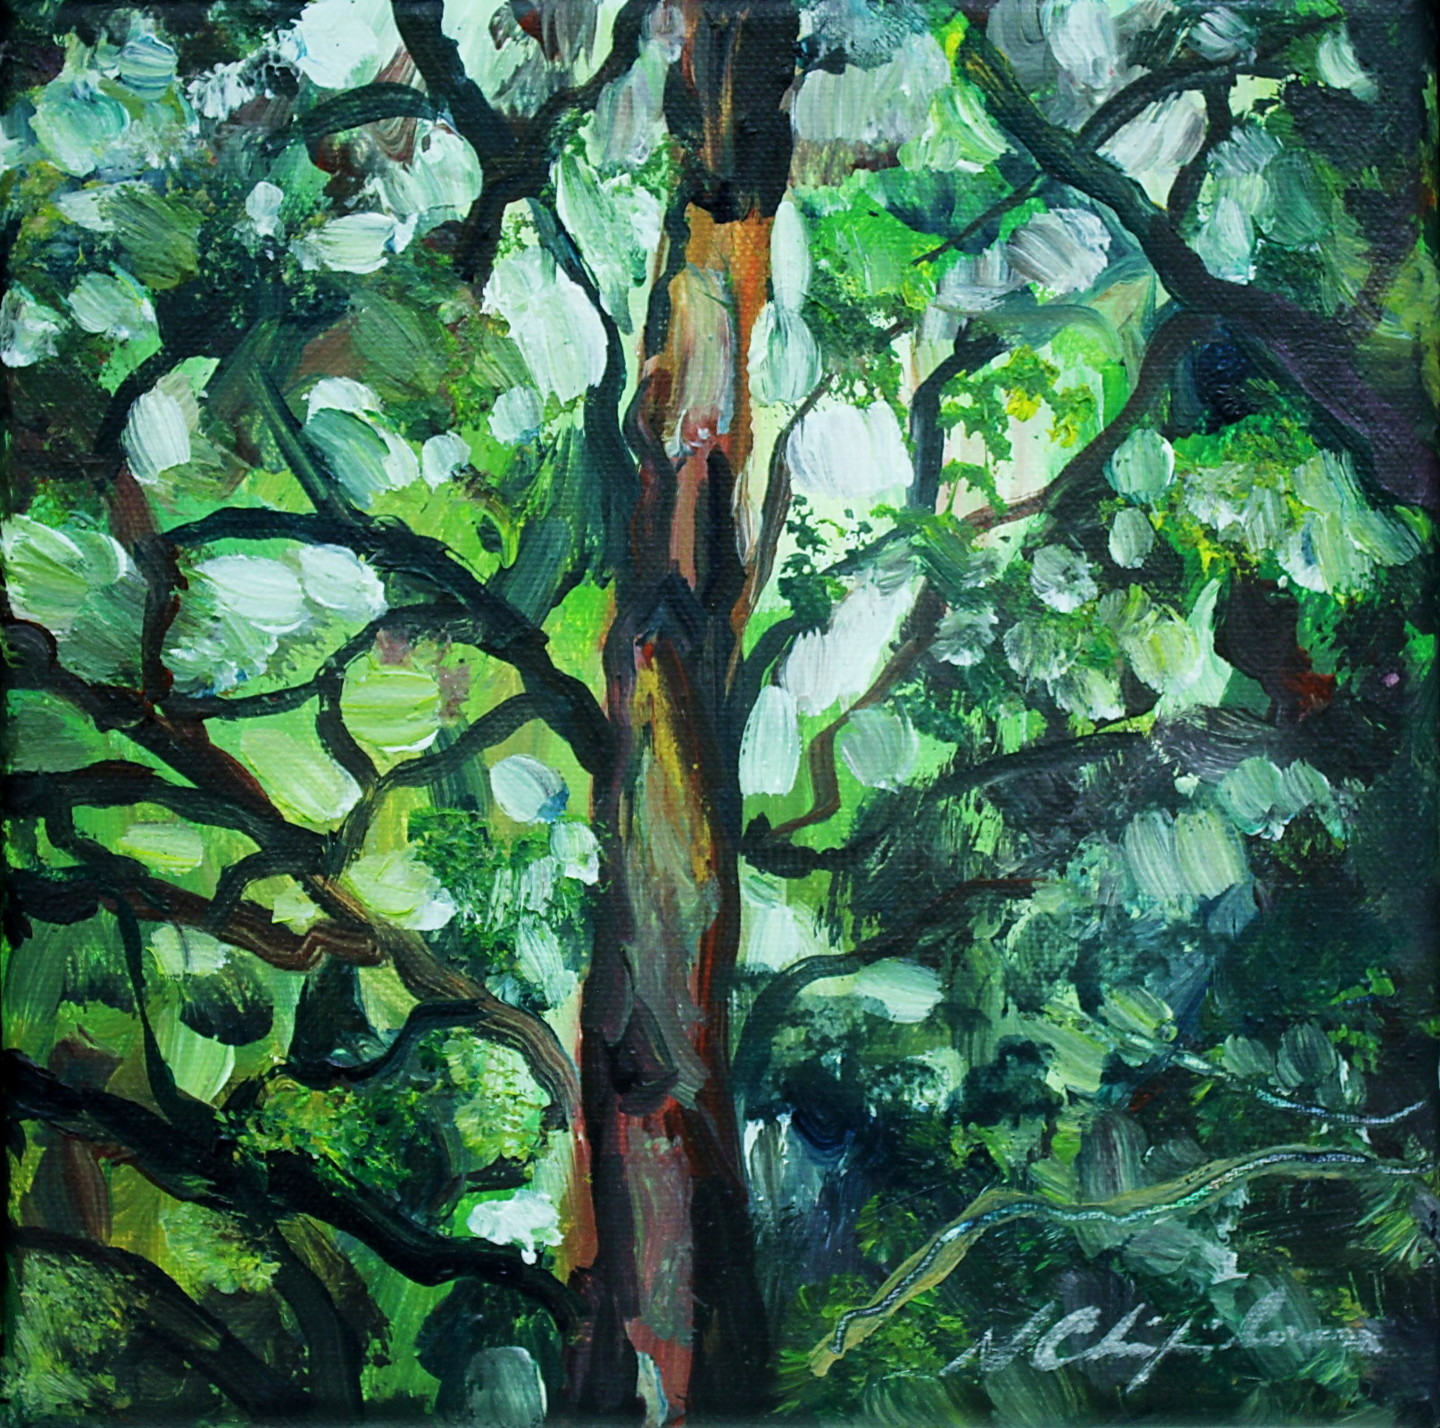 Nath Chipilova (Atelier NN art store) - Into the wood 1